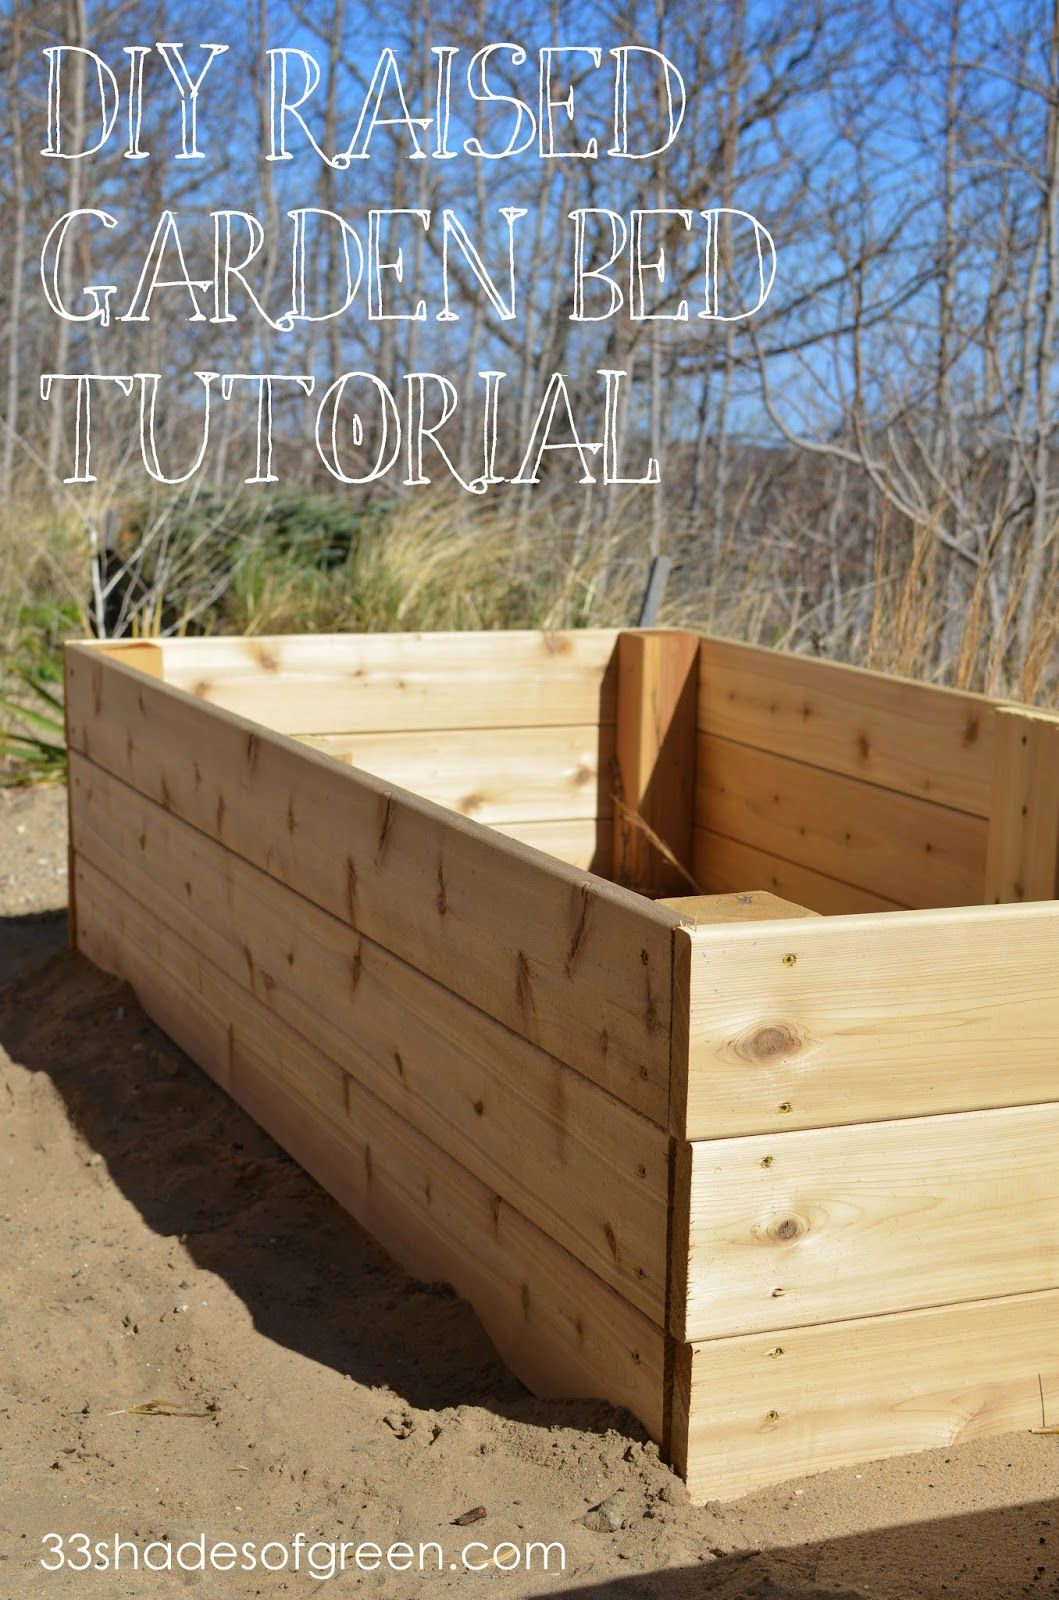 17 Best ideas about Building Raised Beds on Pinterest Building